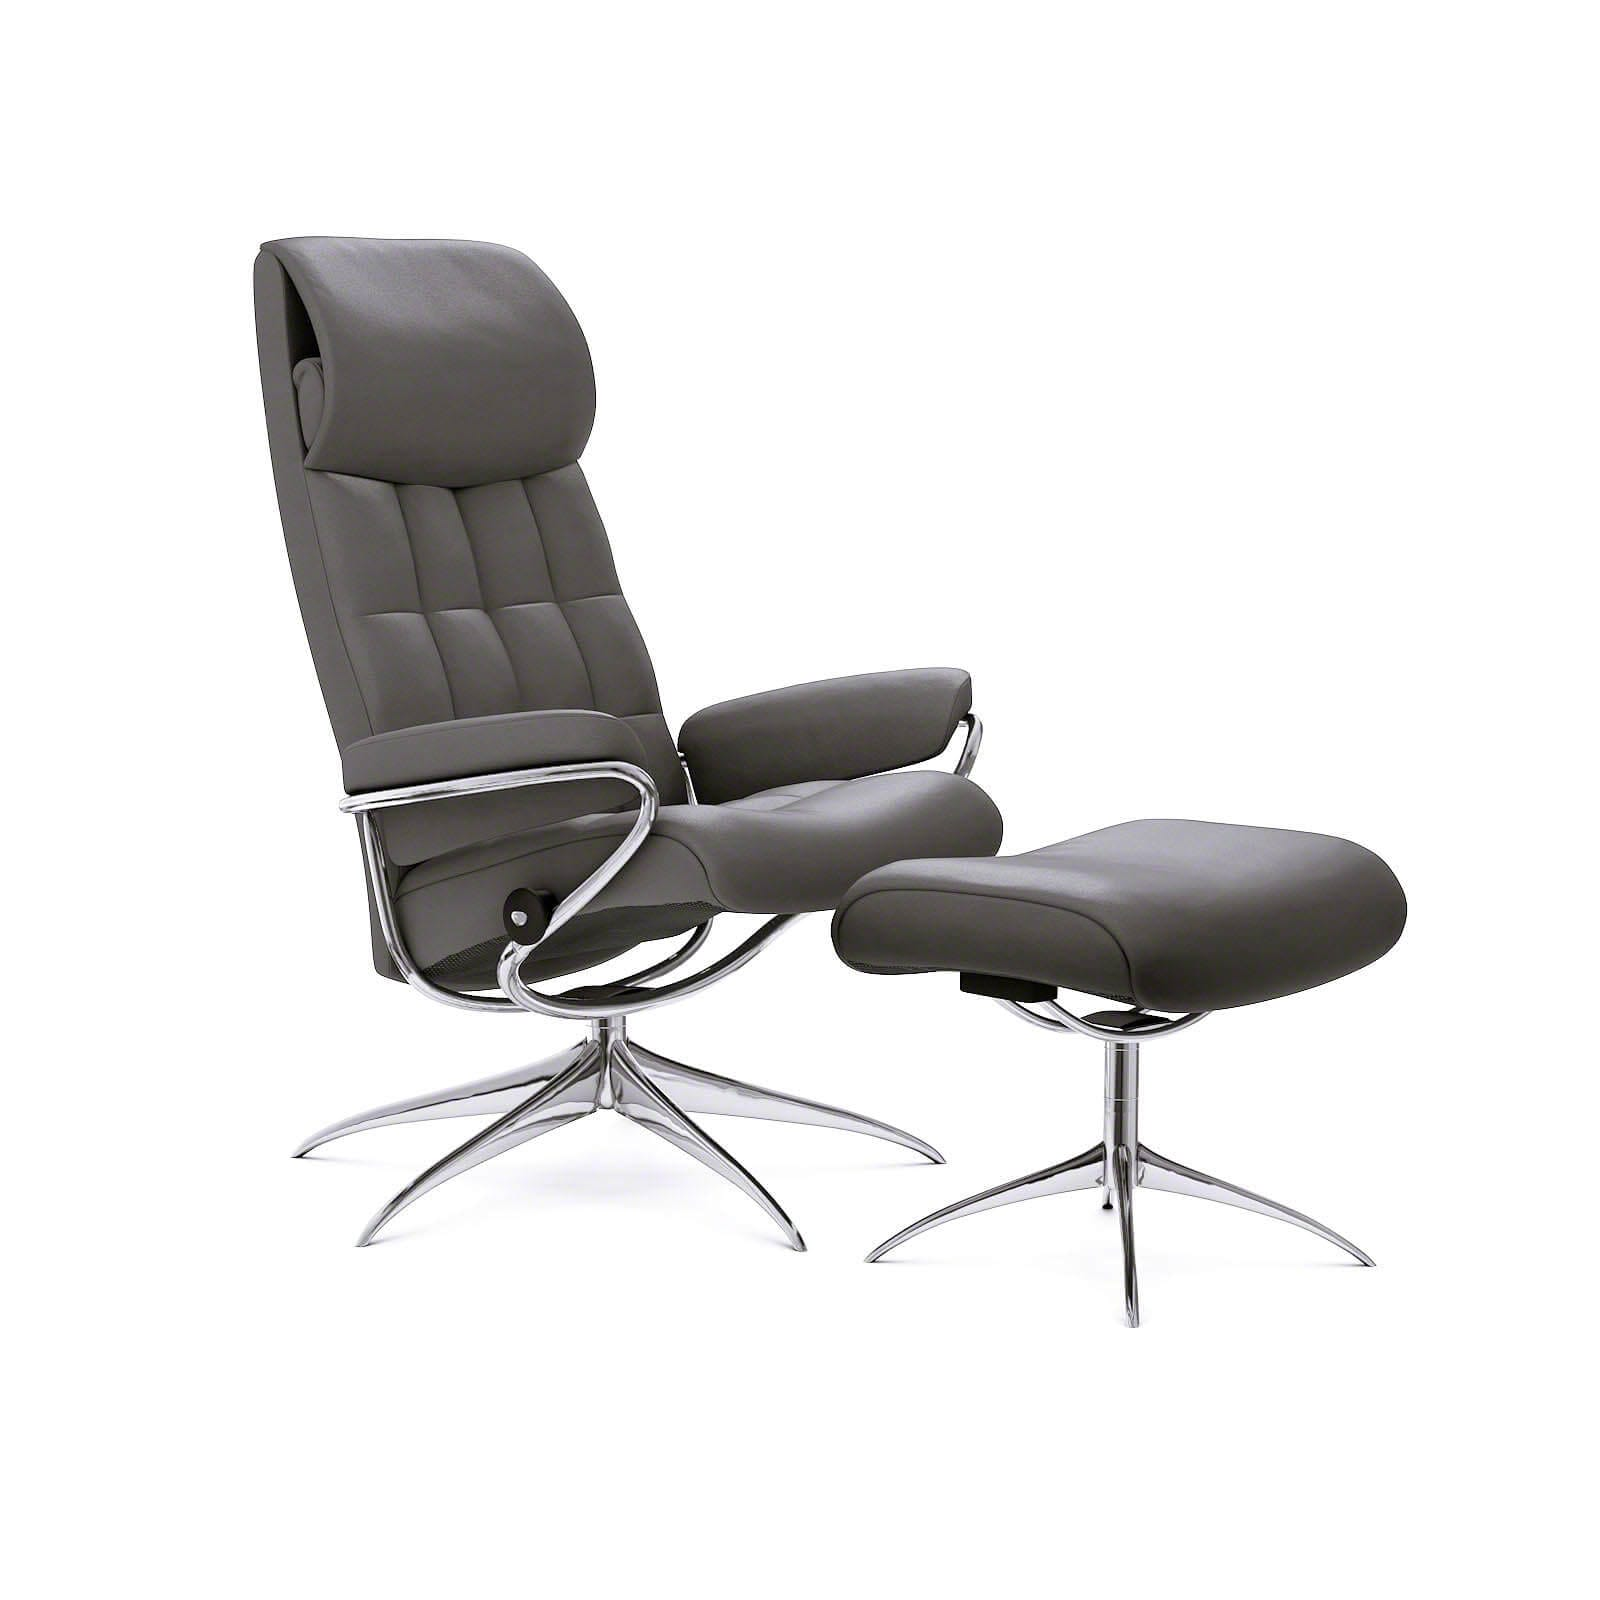 Stressless london sessel mit hoher lehne paloma metal grey for Sessel mit hoher lehne